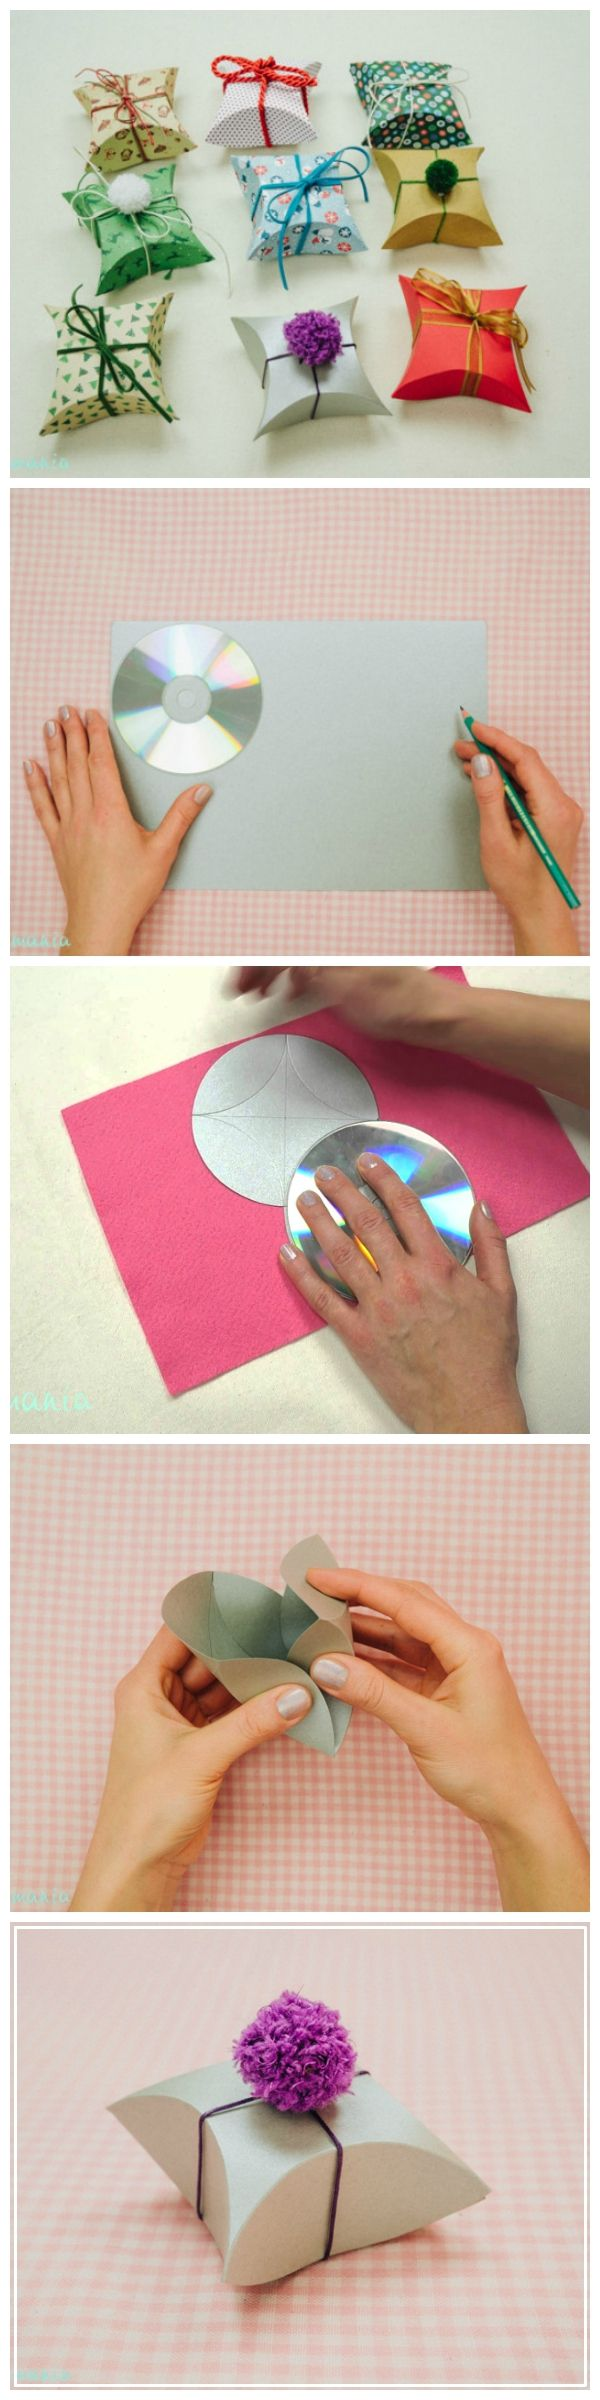 DIY: Beautiful Square Pillow Gift Box Tutorial                                                                                                                                                      Más